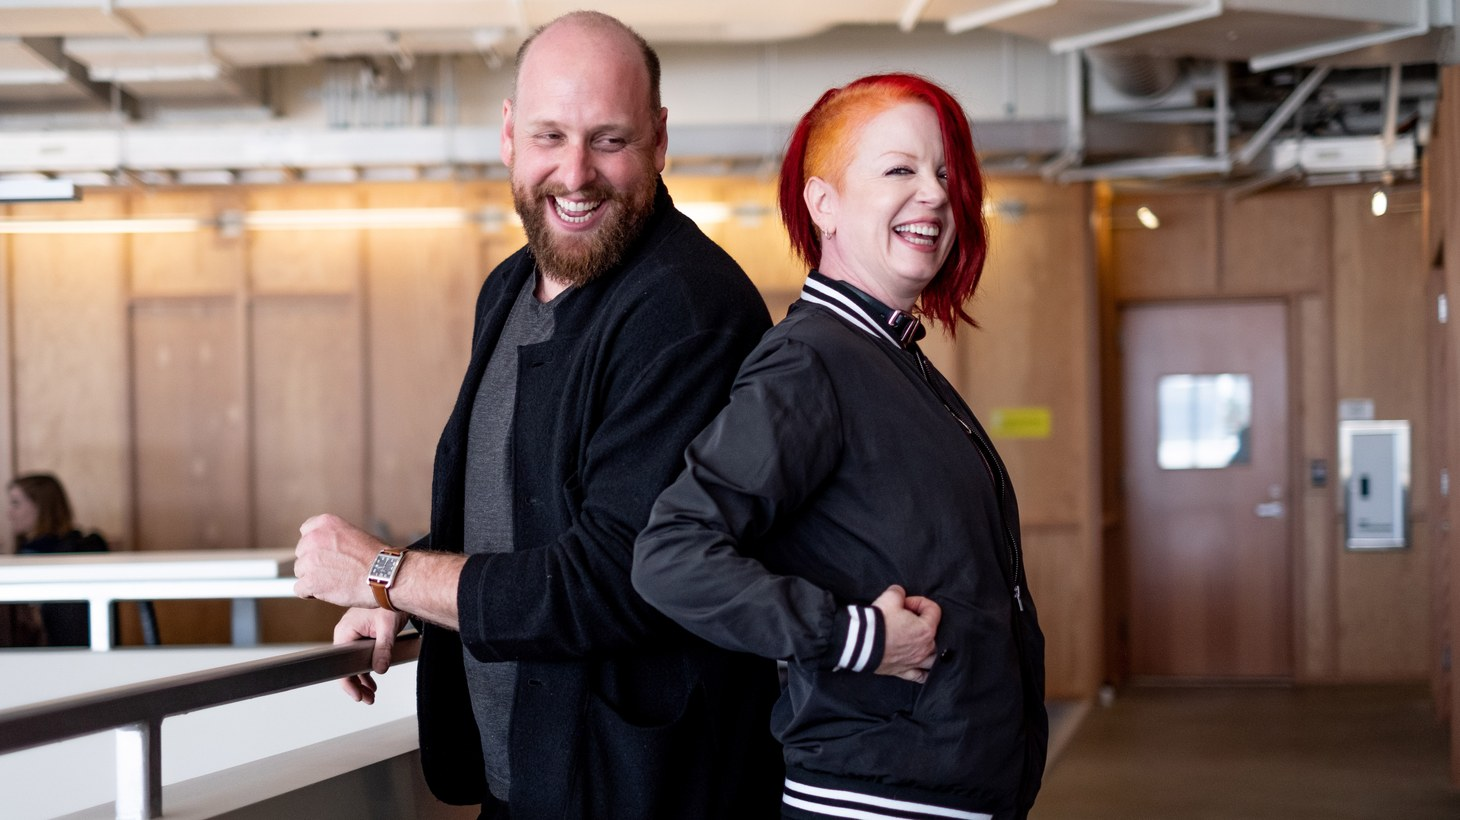 Shirley Manson and Christopher Rountree at KCRW.